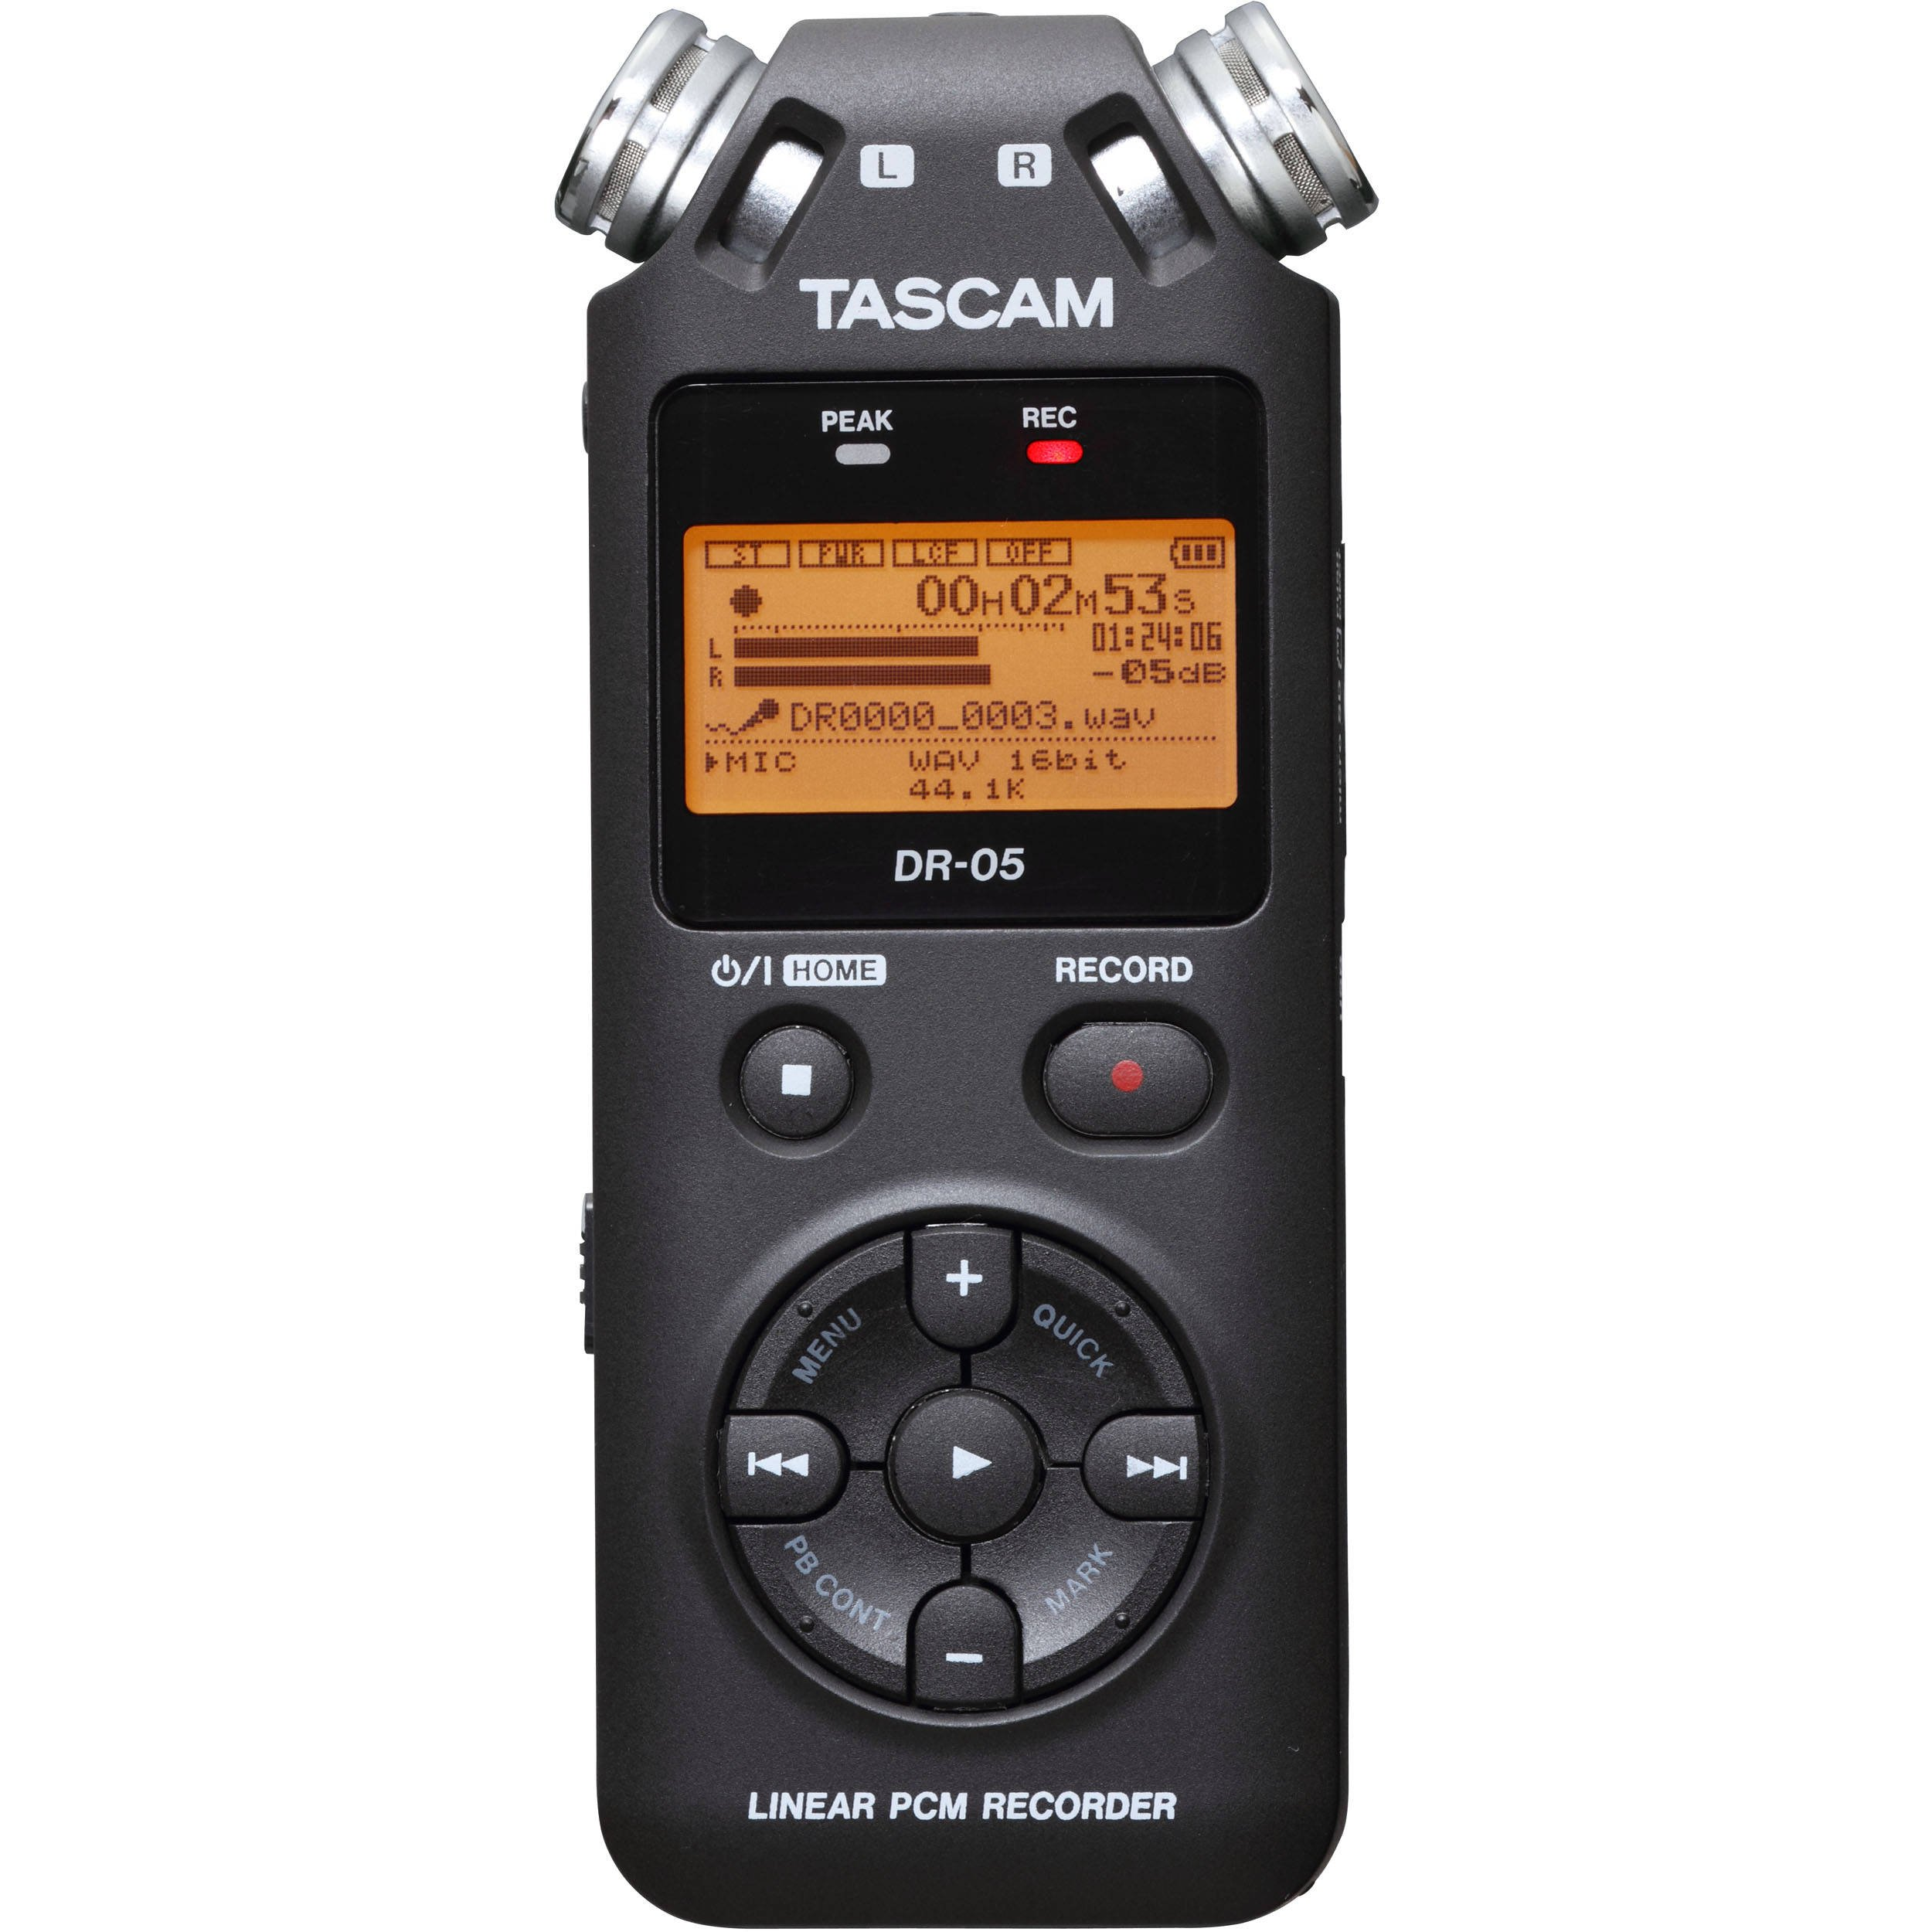 Tascam DR-05 (Version 2) Portable Handheld Digital Audio Recorder (Black) with Deluxe accessory bundle by Tascam (Image #2)